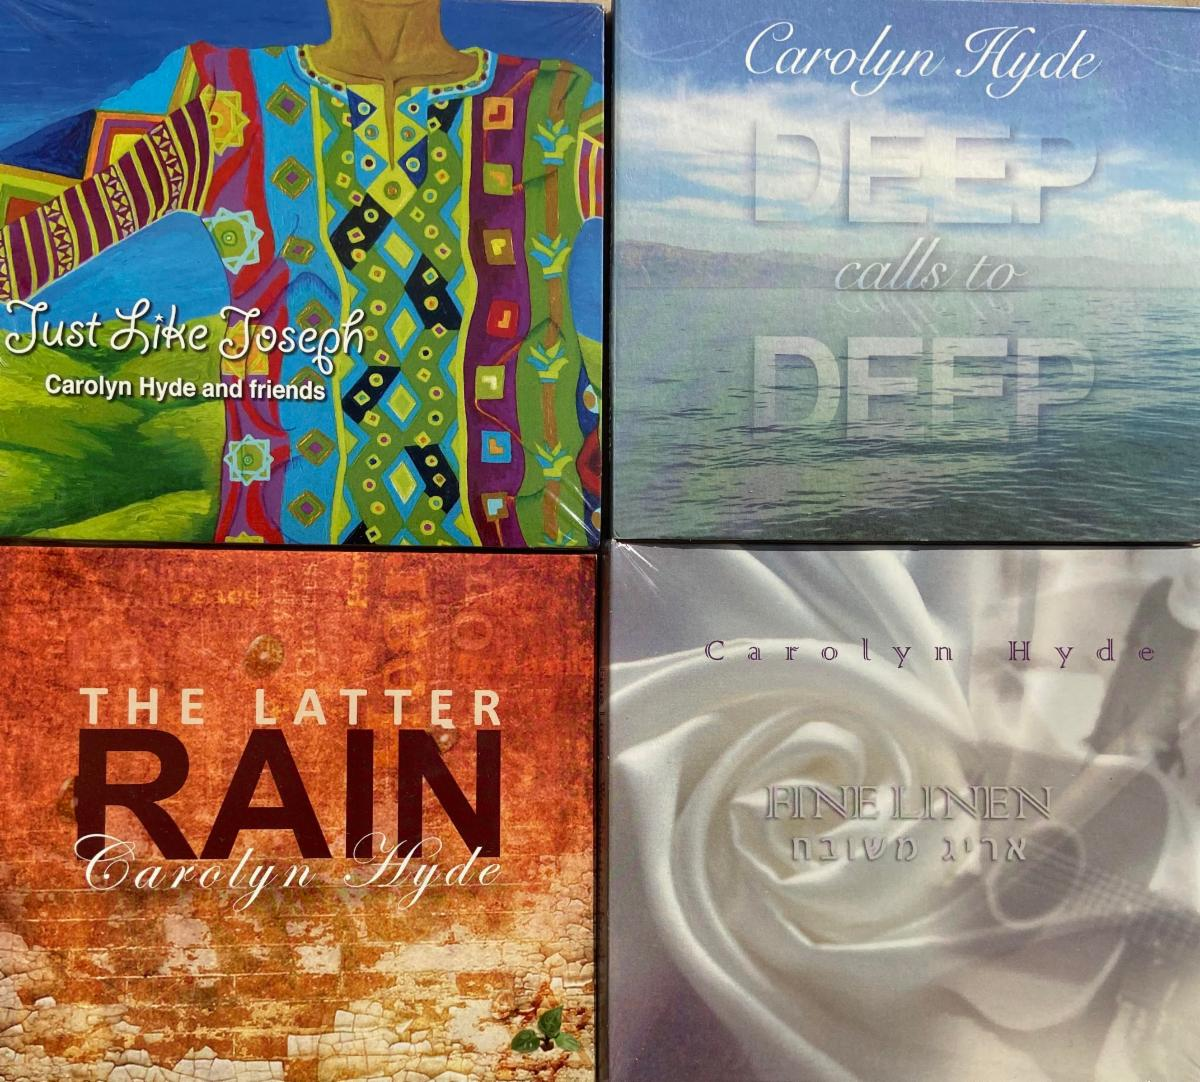 Four worship CDs